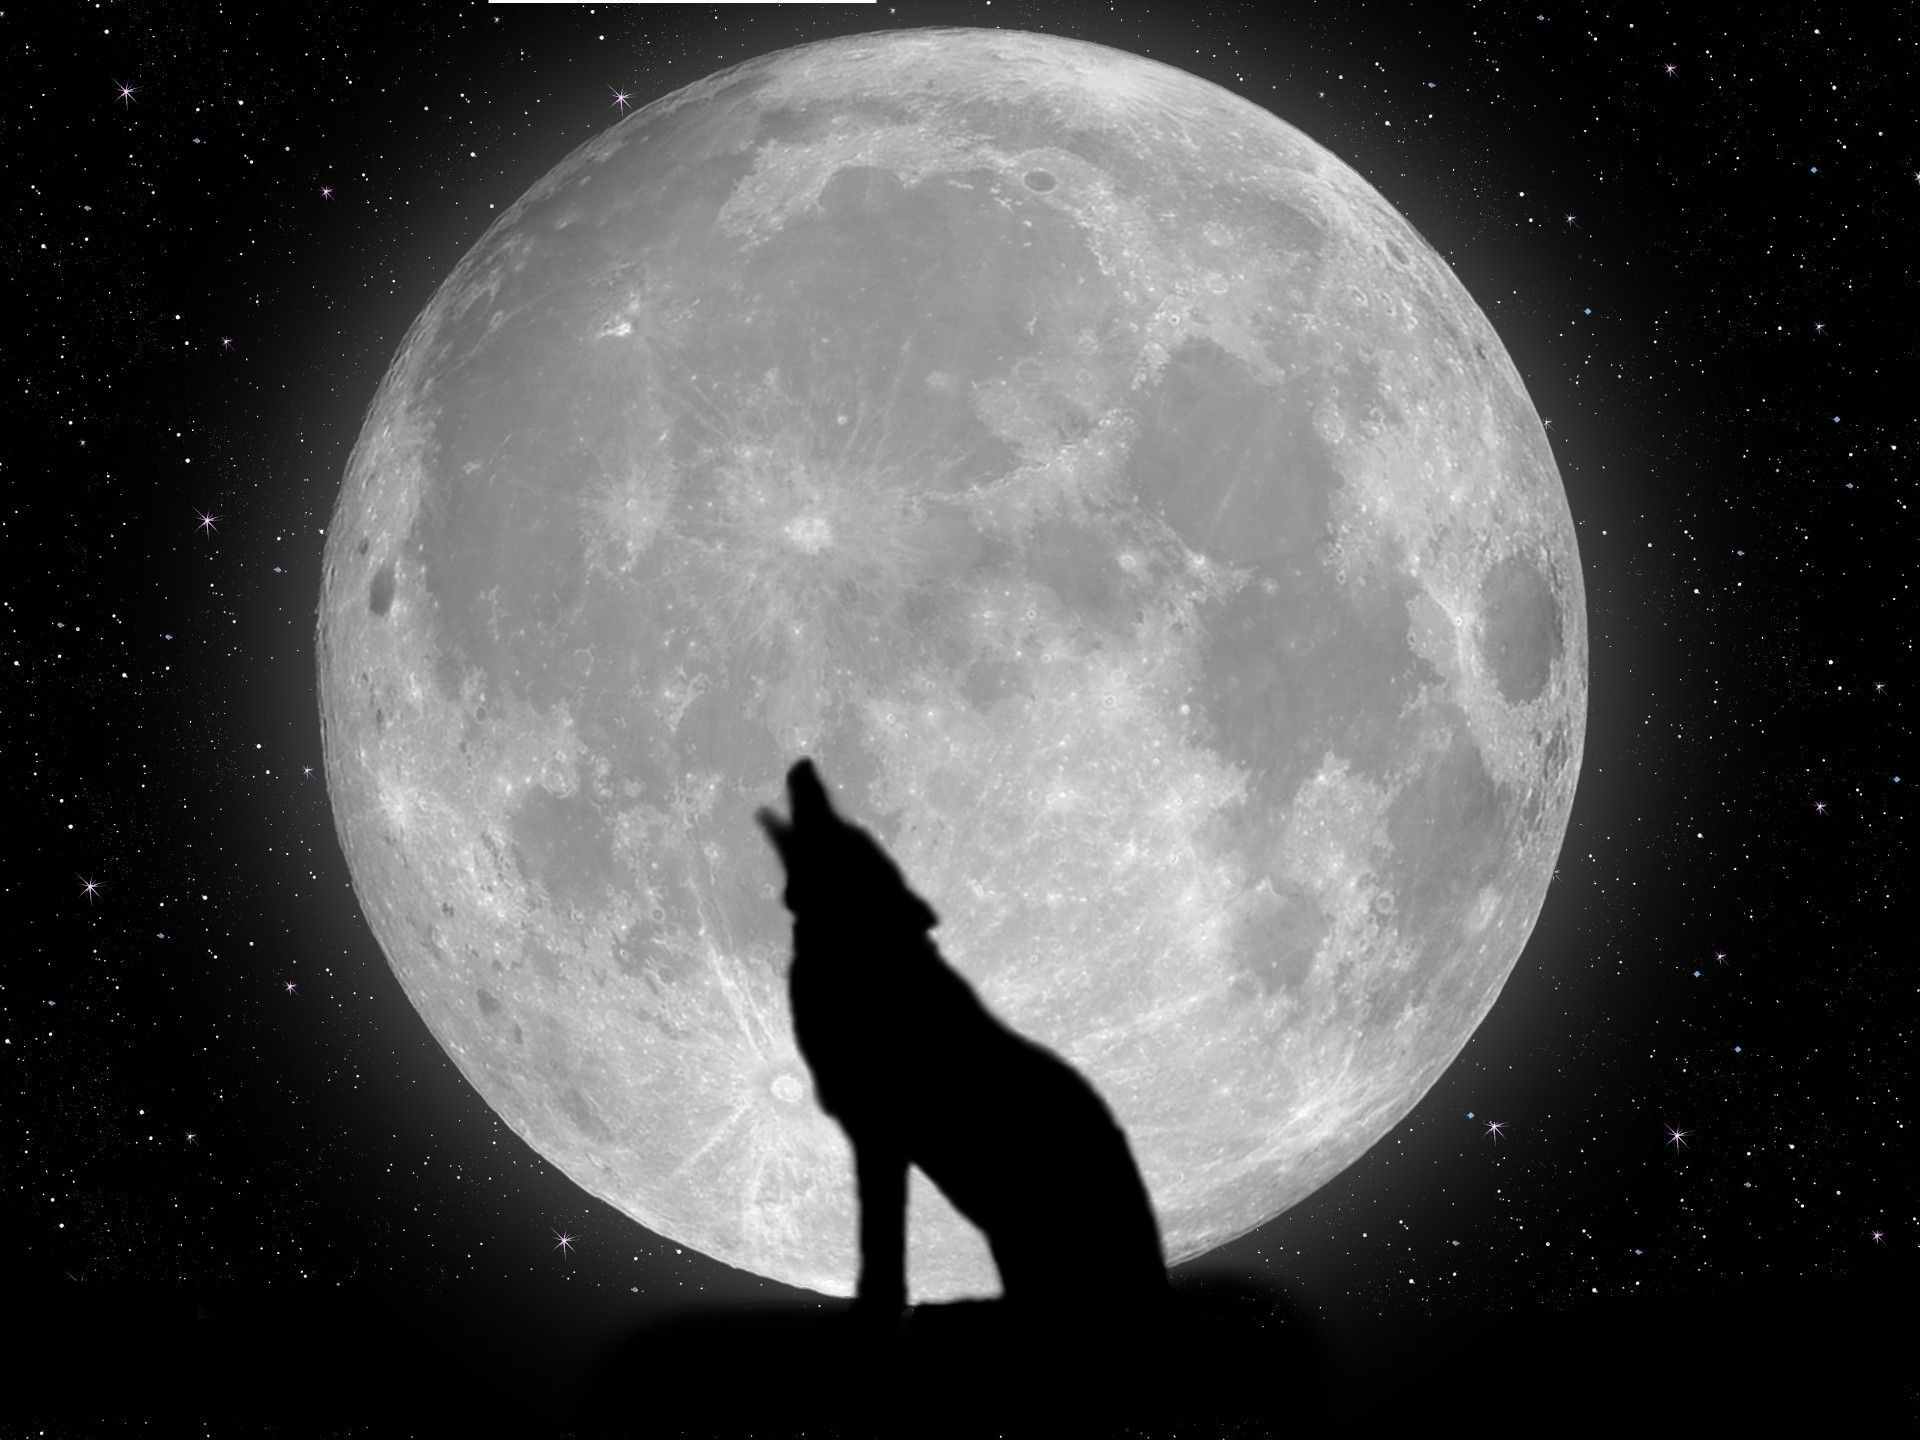 1920x1440  Lone Wolf Wallpaper 1280×1024 Lone Wolf Wallpapers (38 Wallpapers)  | Adorable Wallpapers | Desktop | Pinterest | Wolf wallpaper, Wallpaper and  ...